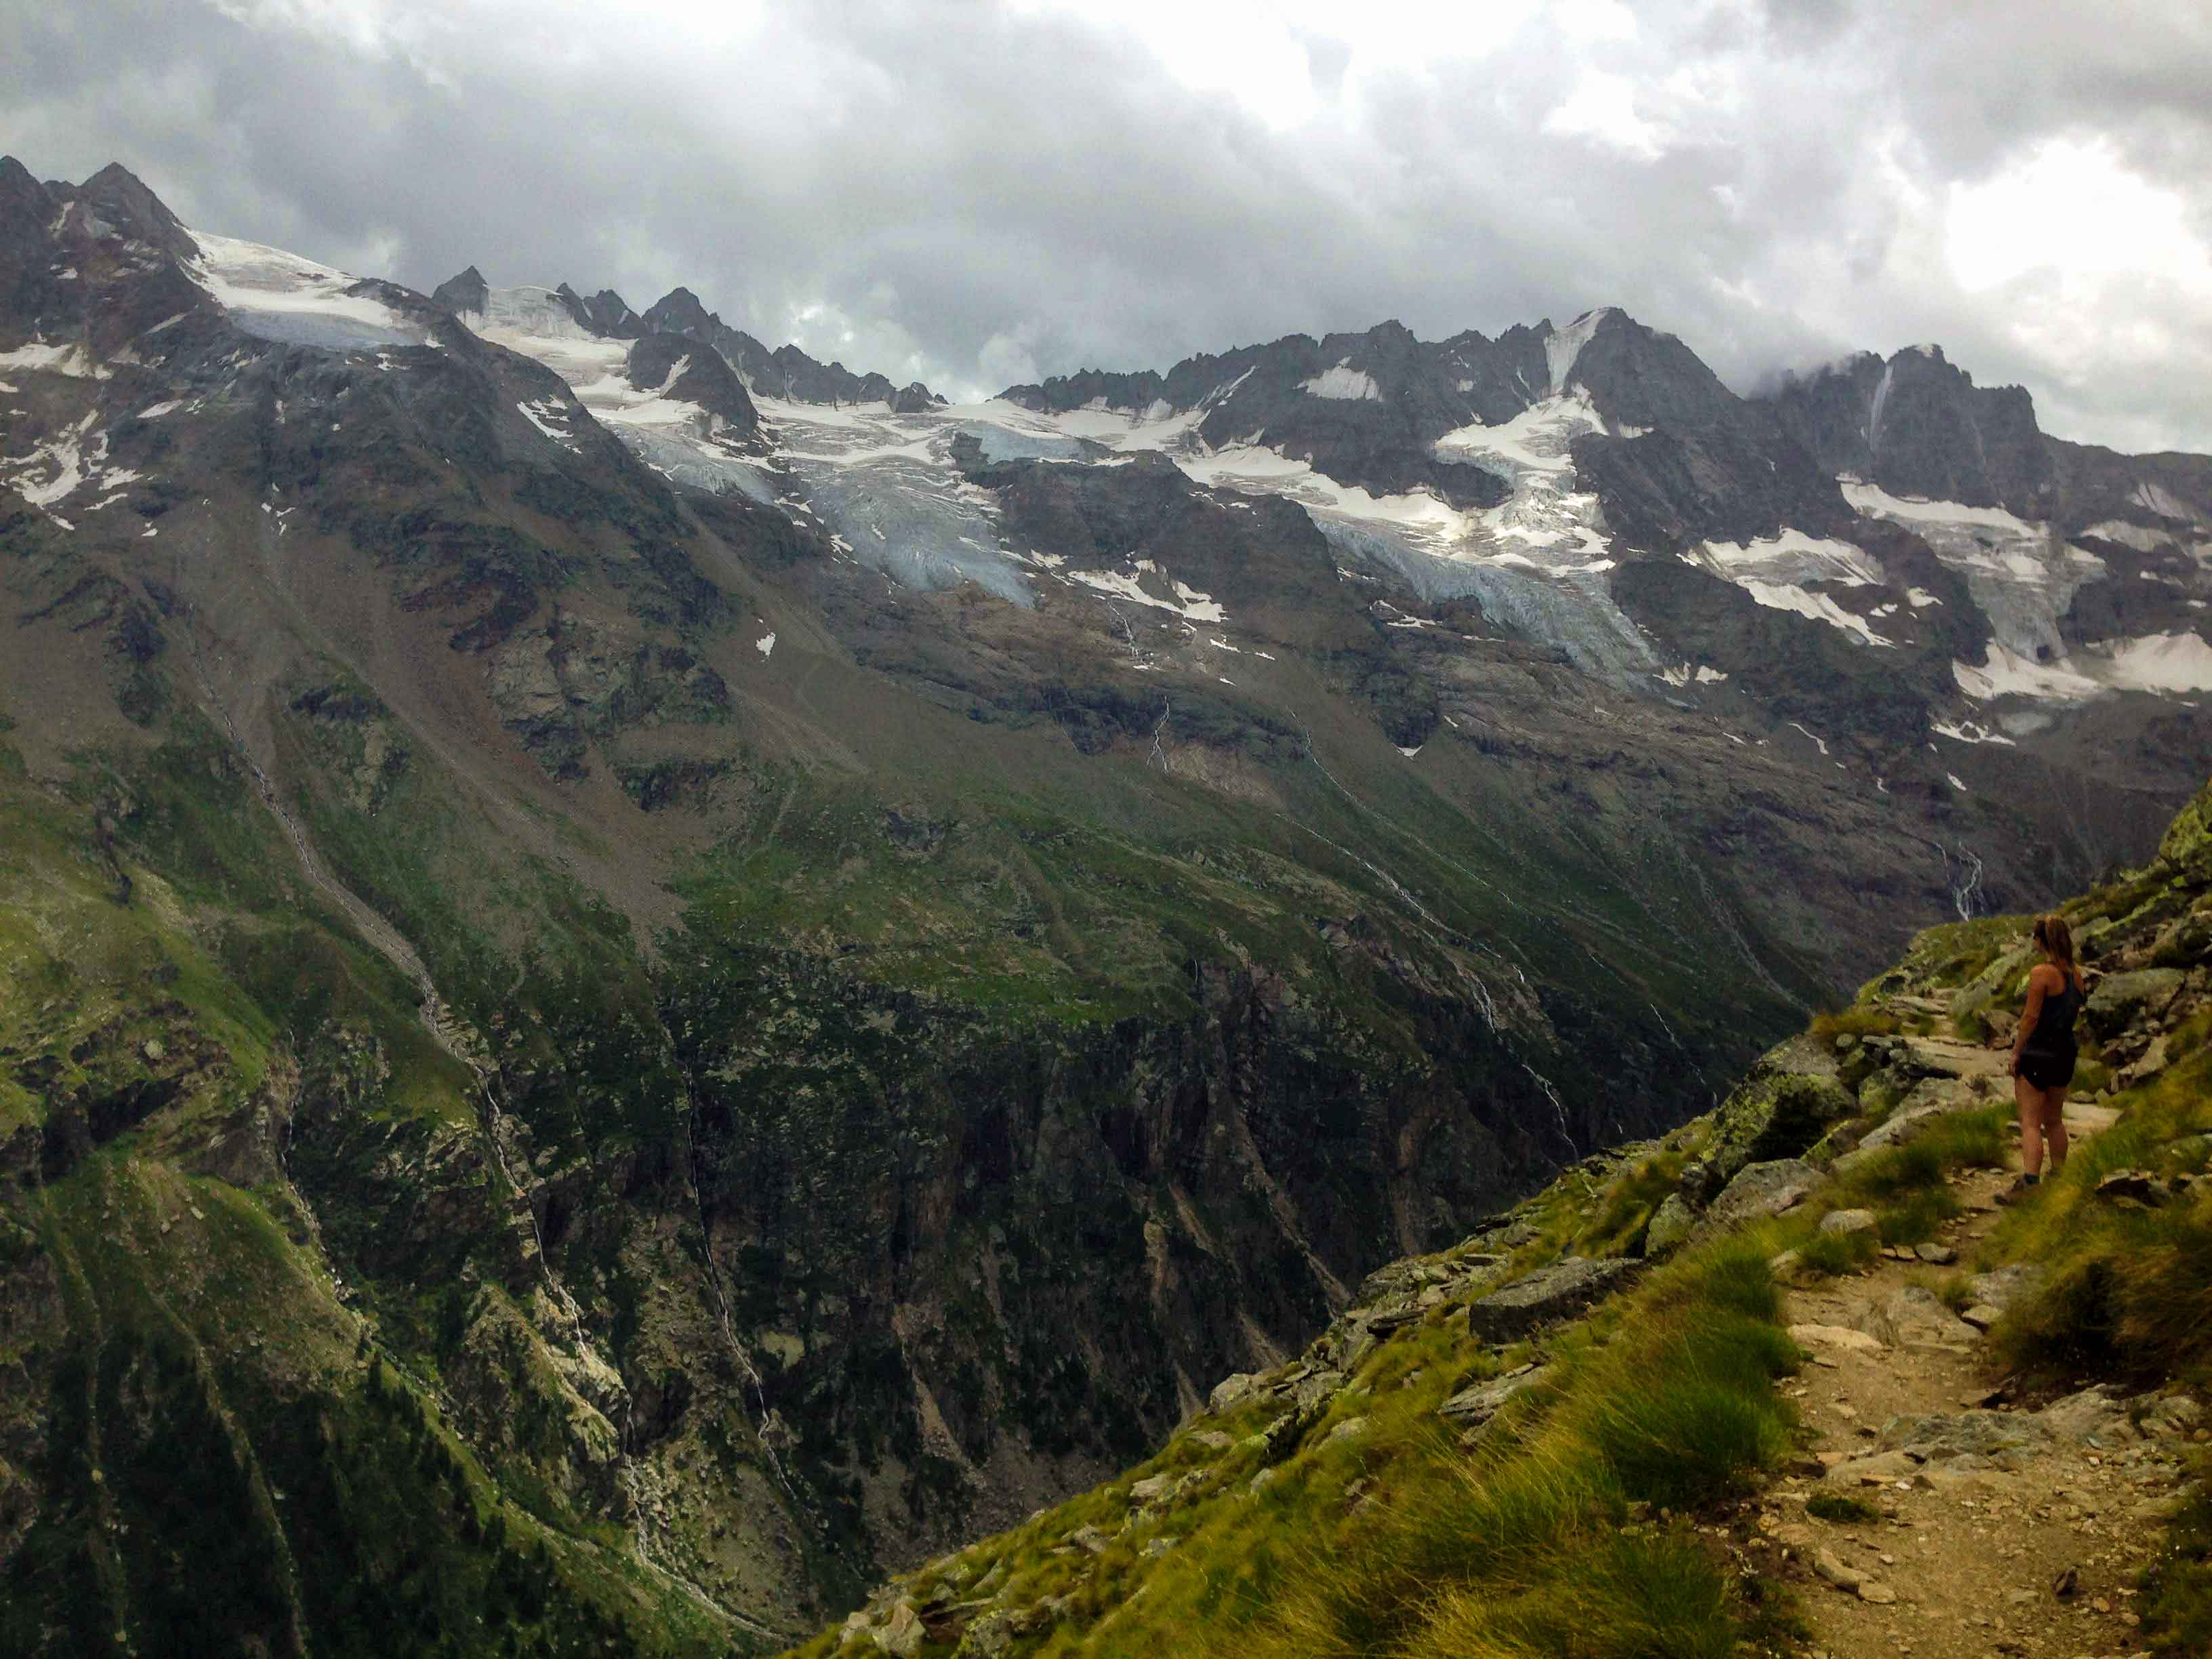 Valley cutting through Gran Paradiso National Park